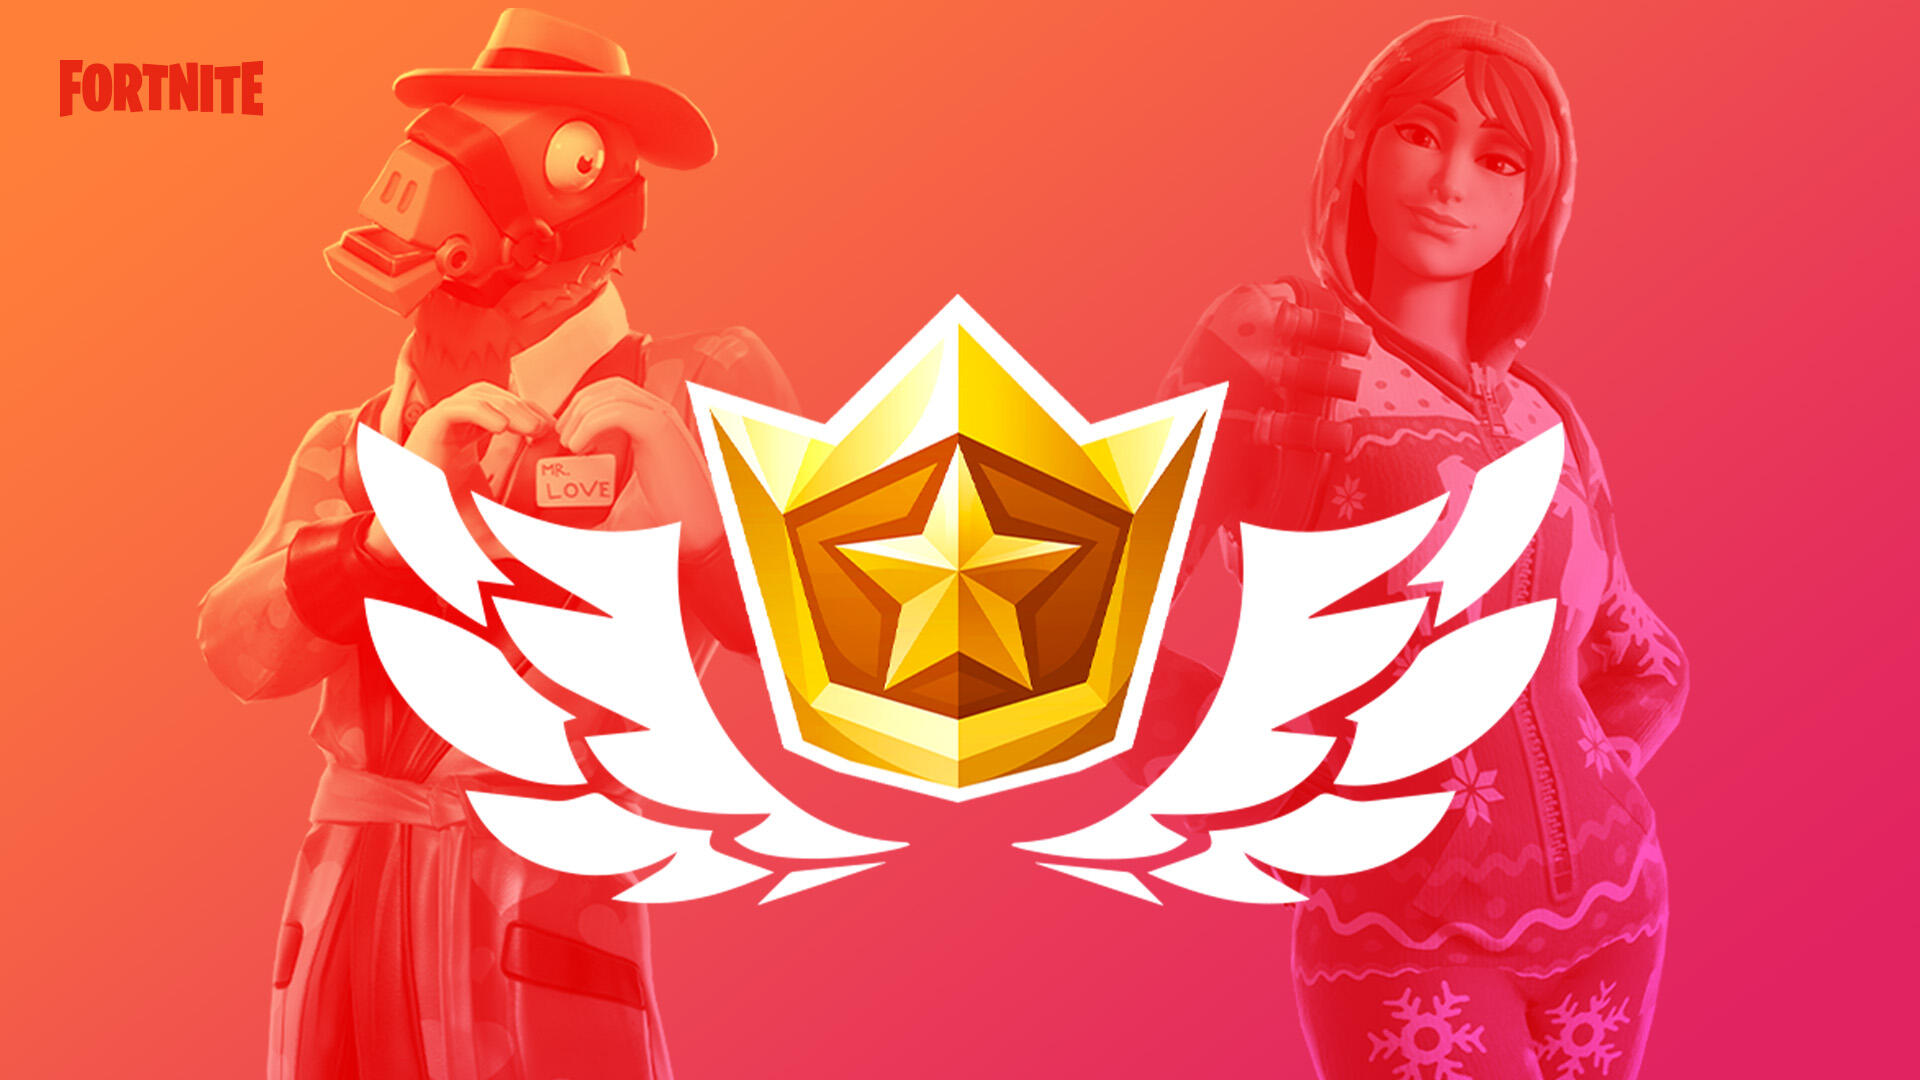 Fortnite Week 2 Challenges - How to Complete All Season 8, Week 2 Battle Pass Challenges